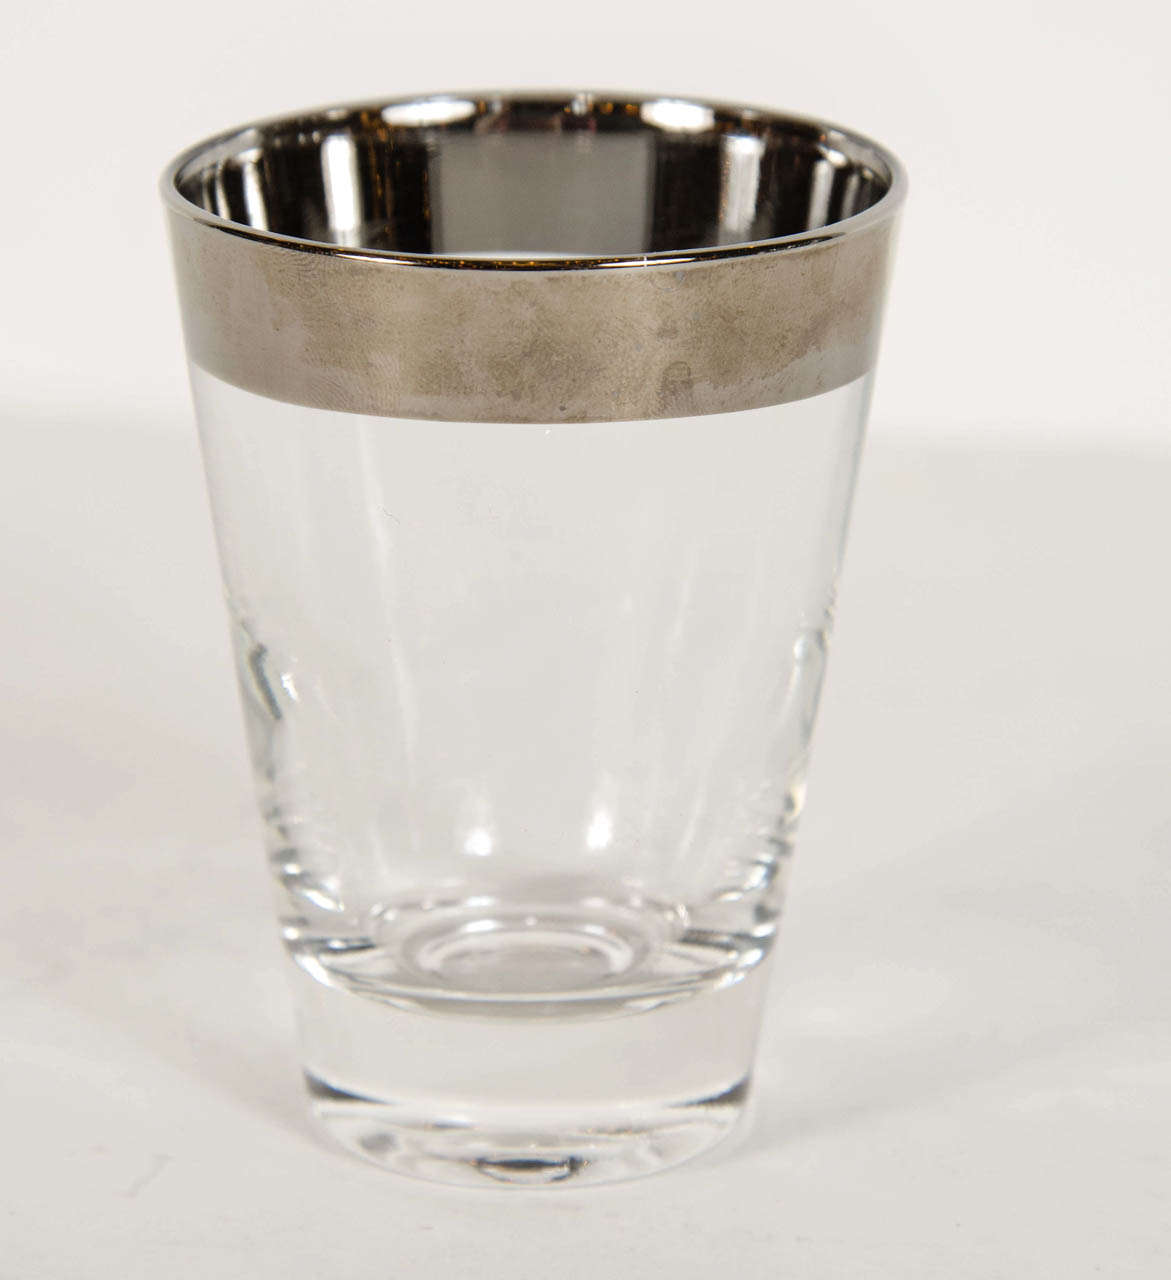 Set of 4 tumblers in hand blown glass with sterling bands on the top.